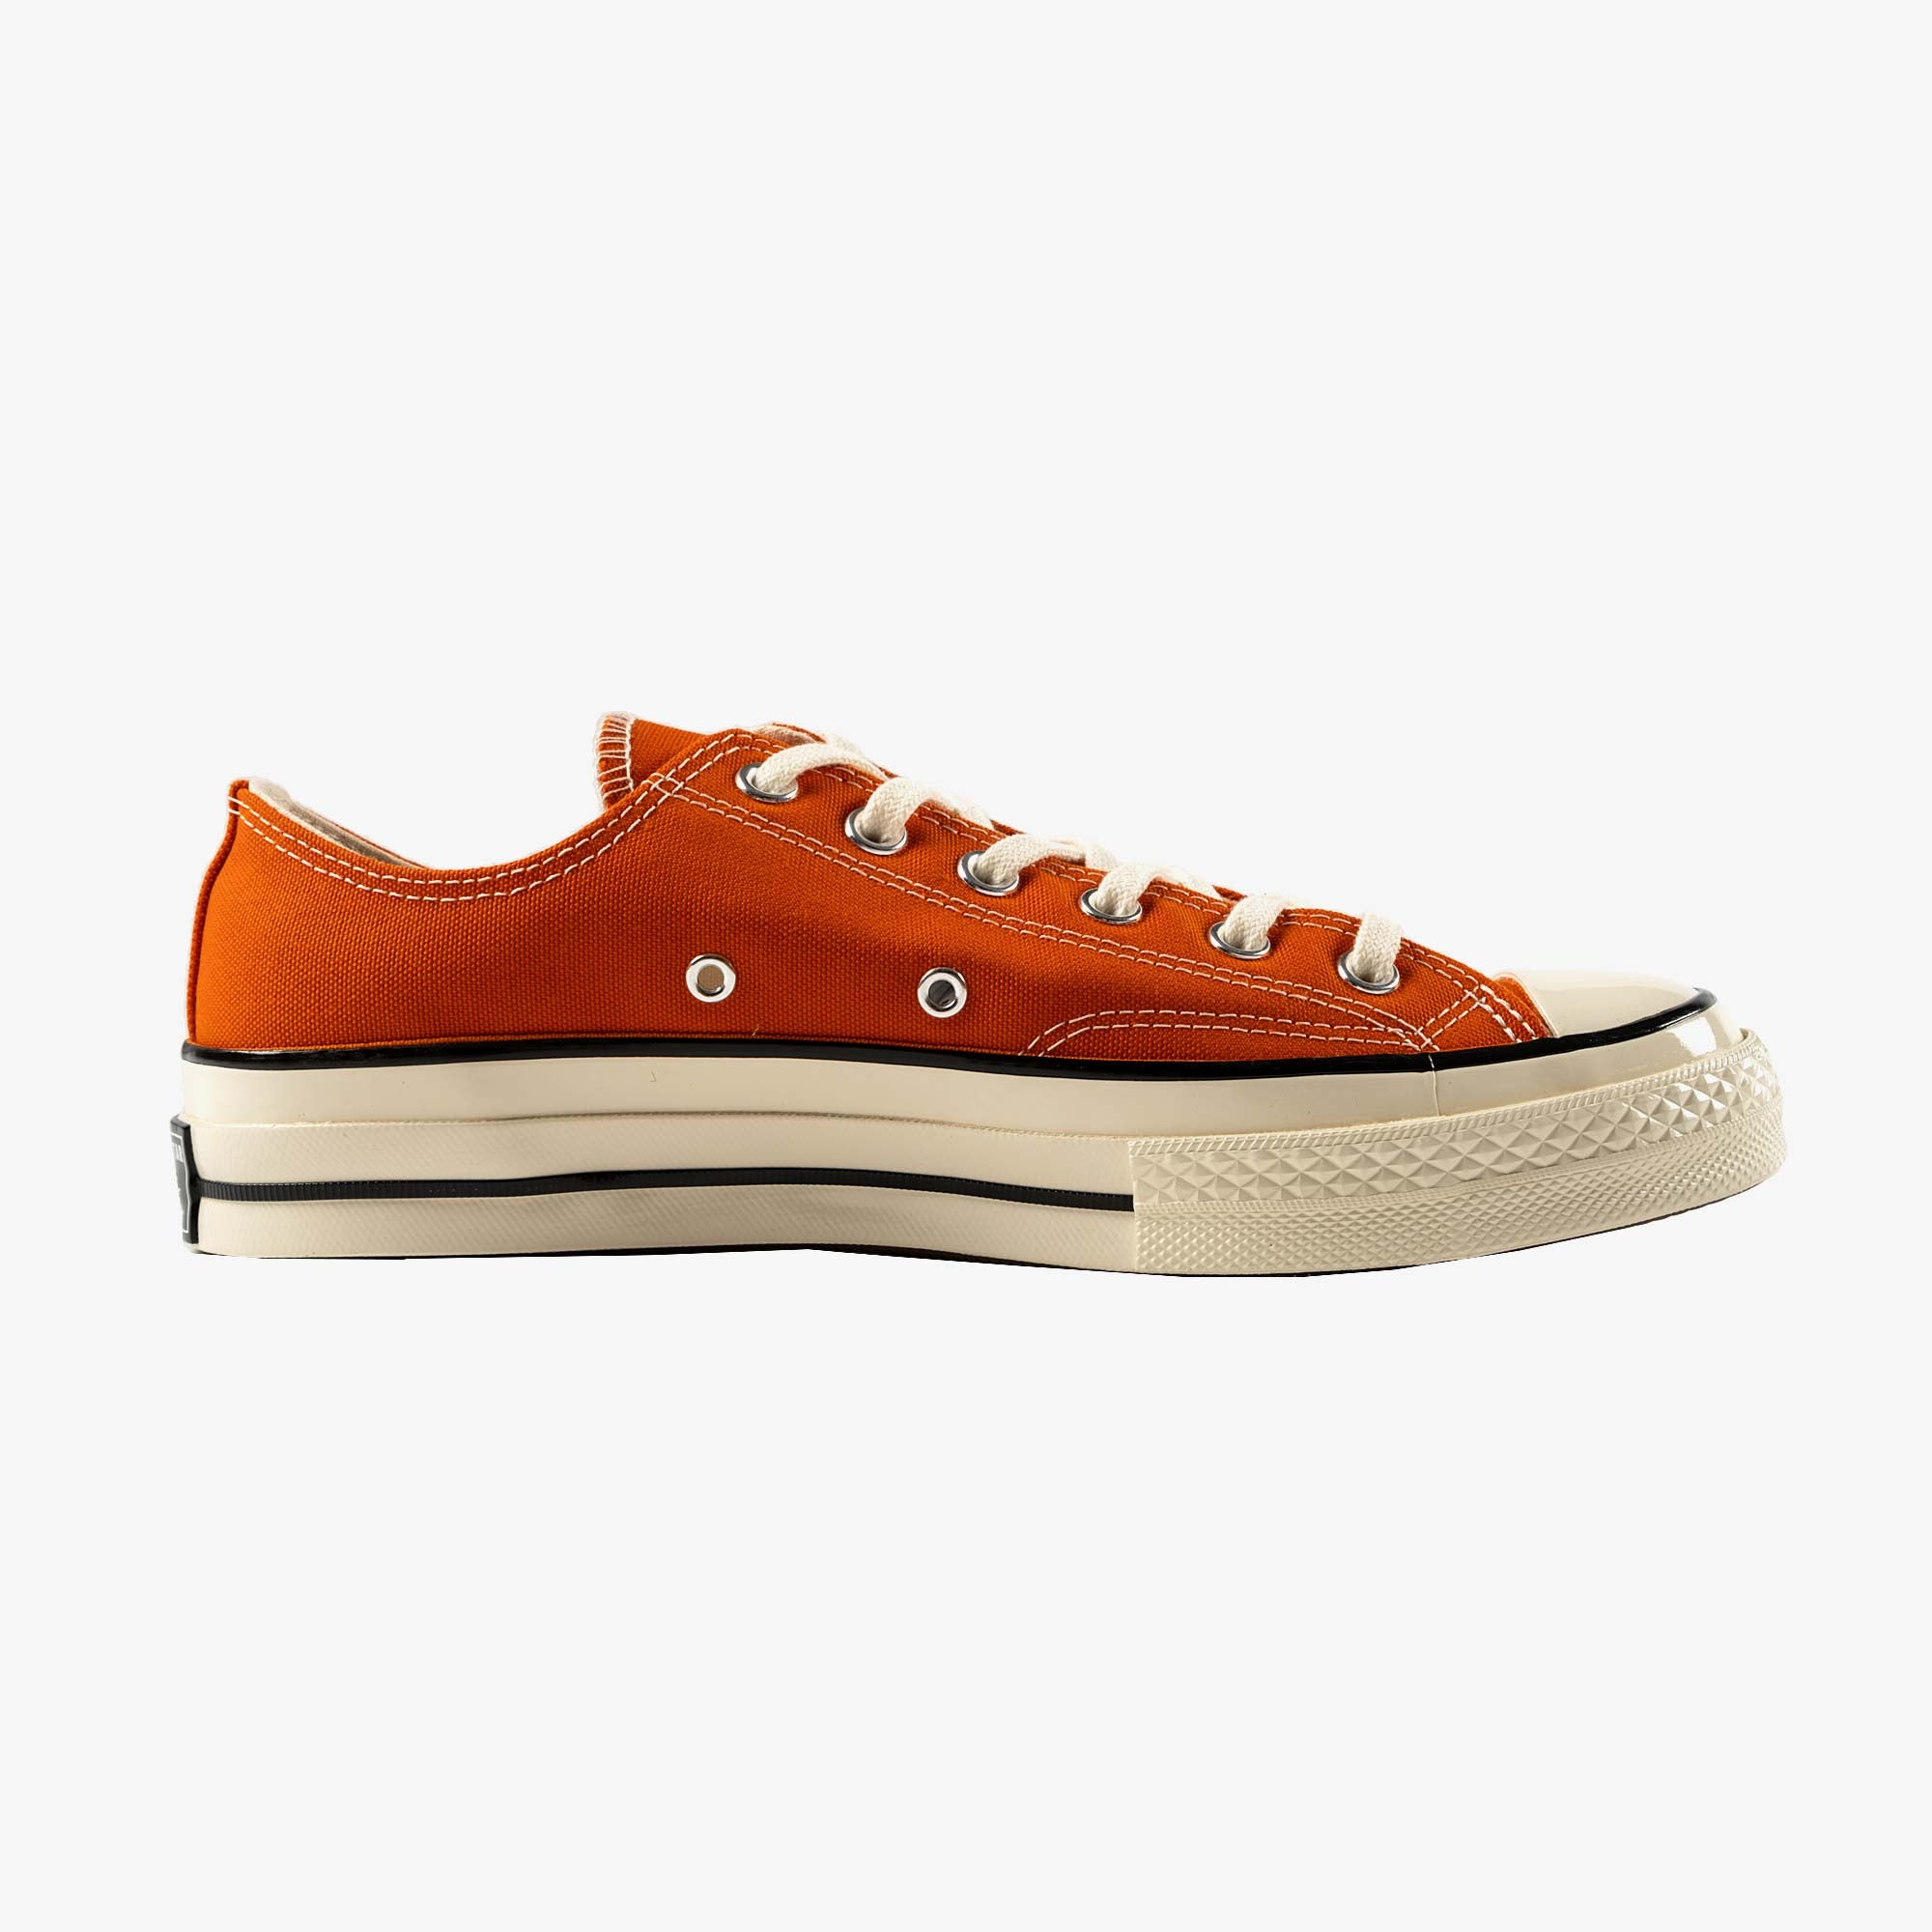 Converse Chuck Taylor Low 70 Recycled Canvas - Fire Pit 4